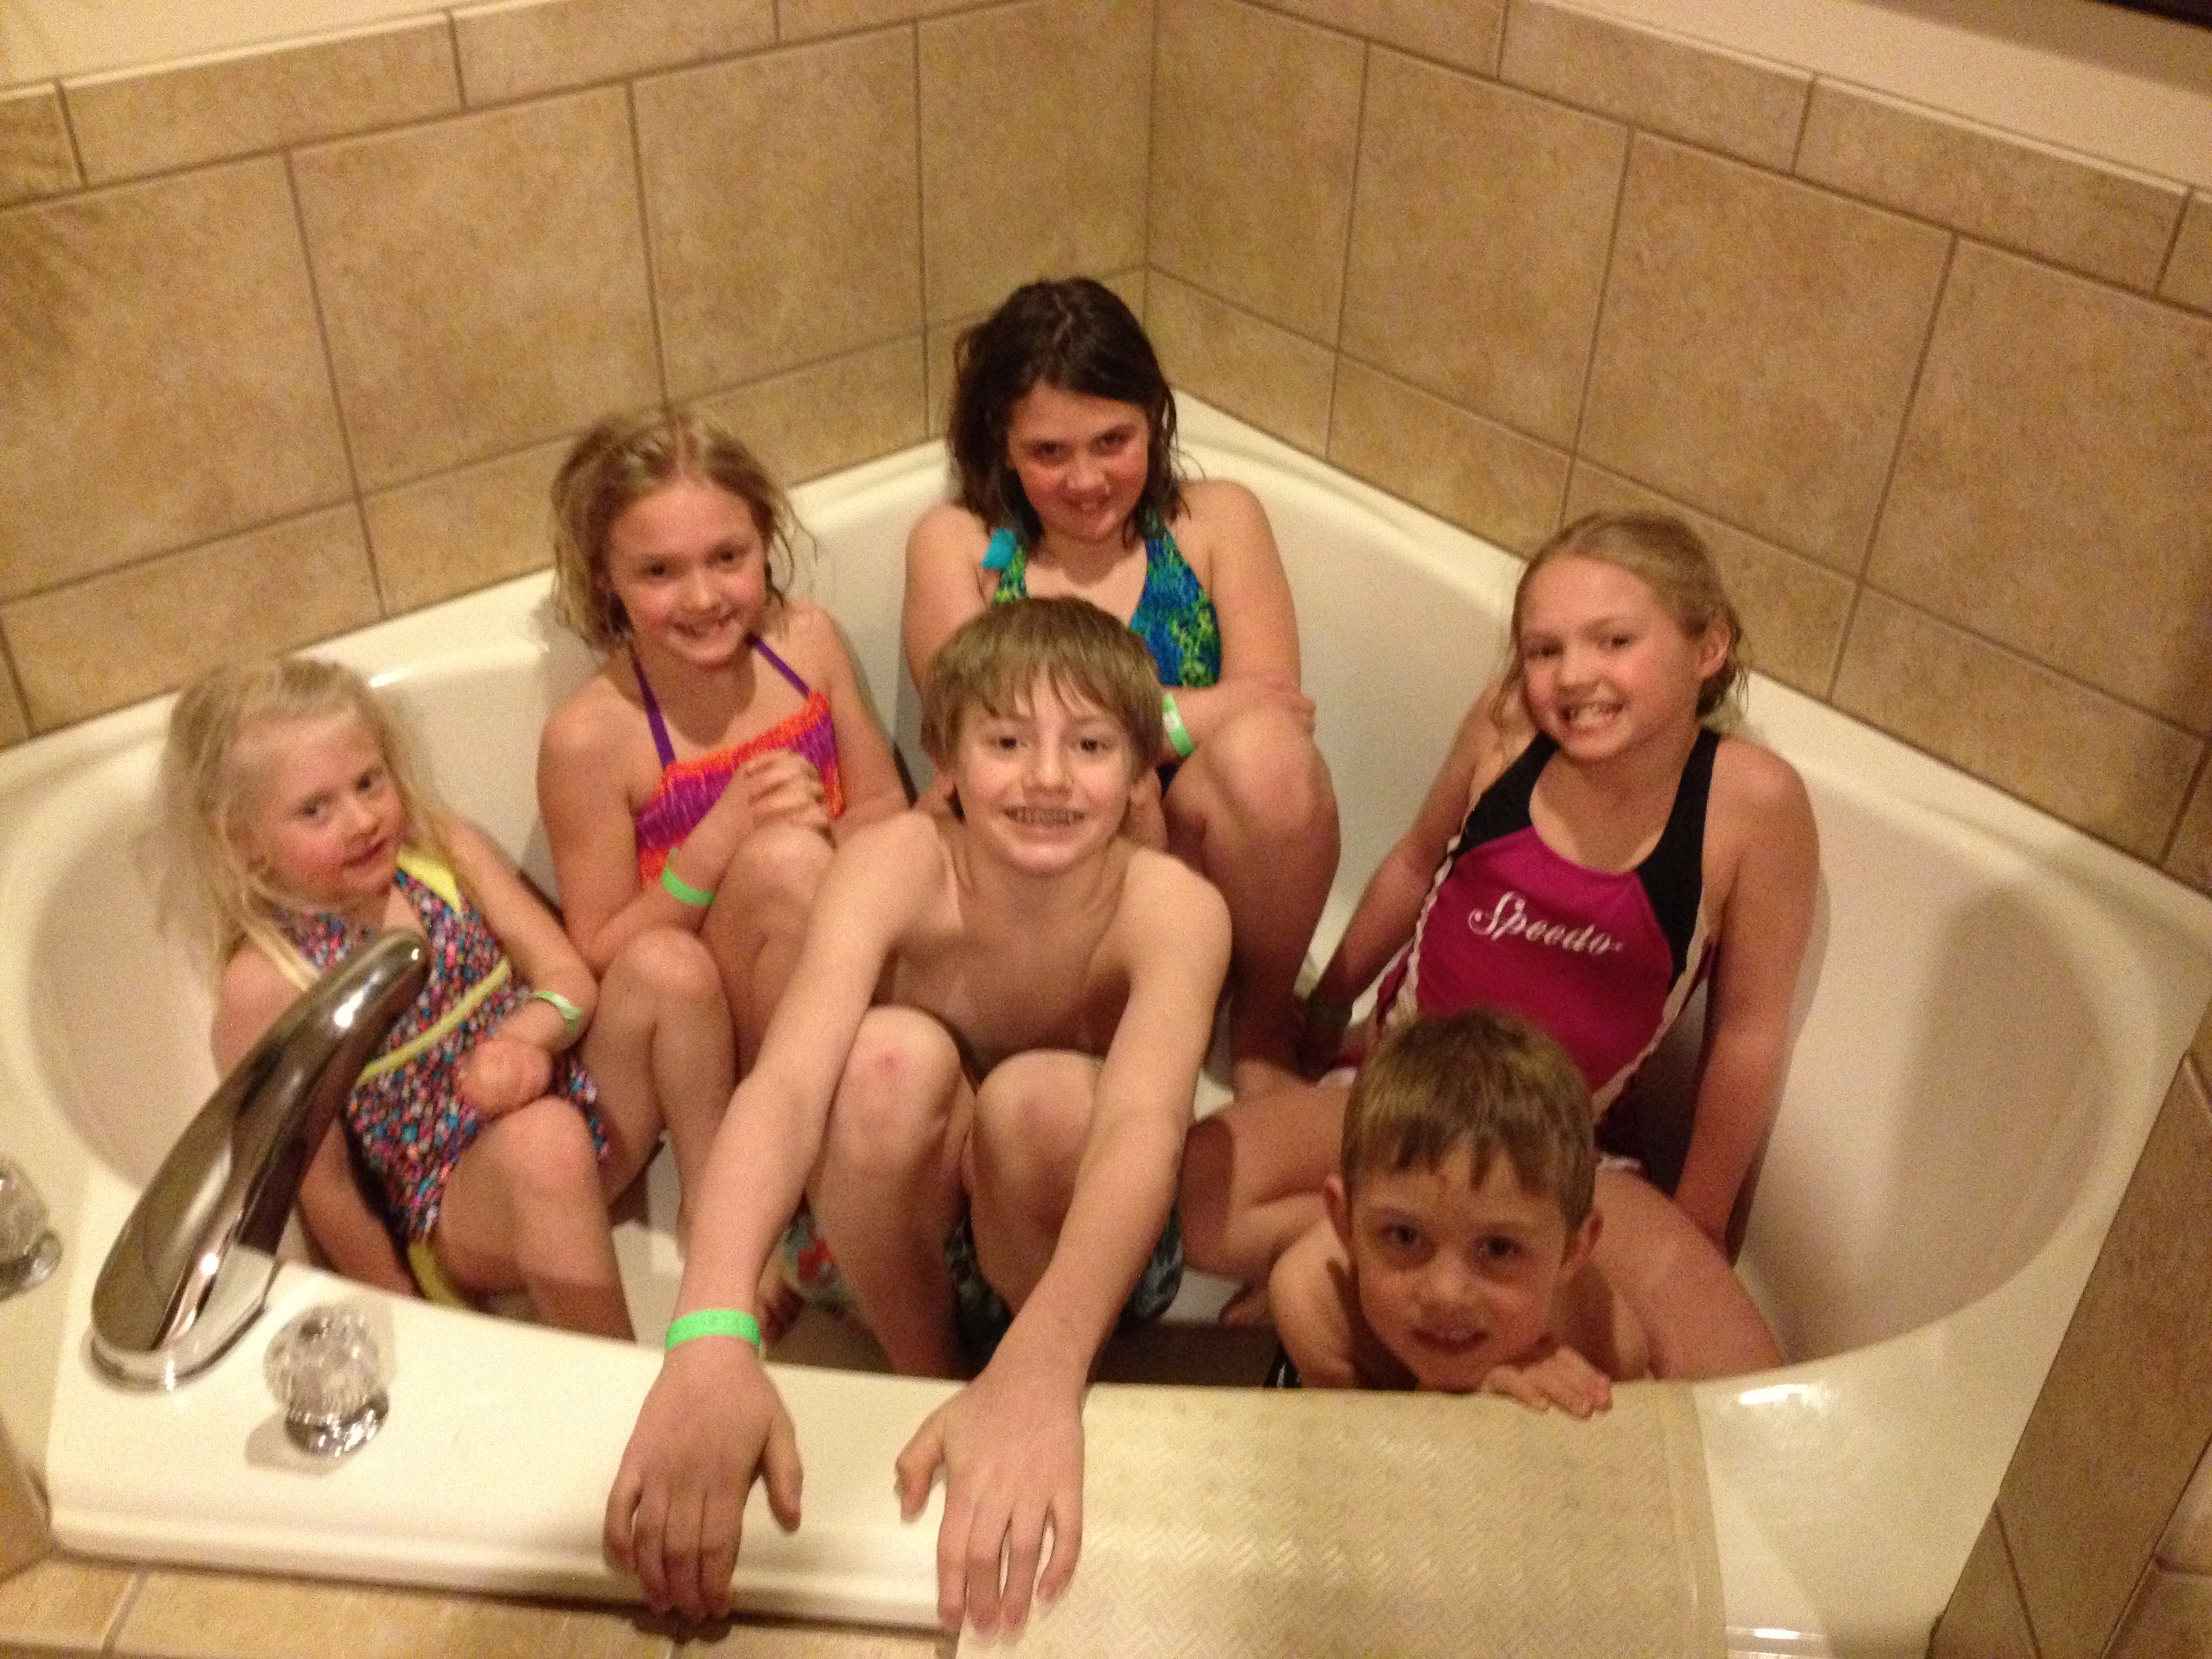 Wordless Wednesday - HOW many in the Tub?!? - Blended